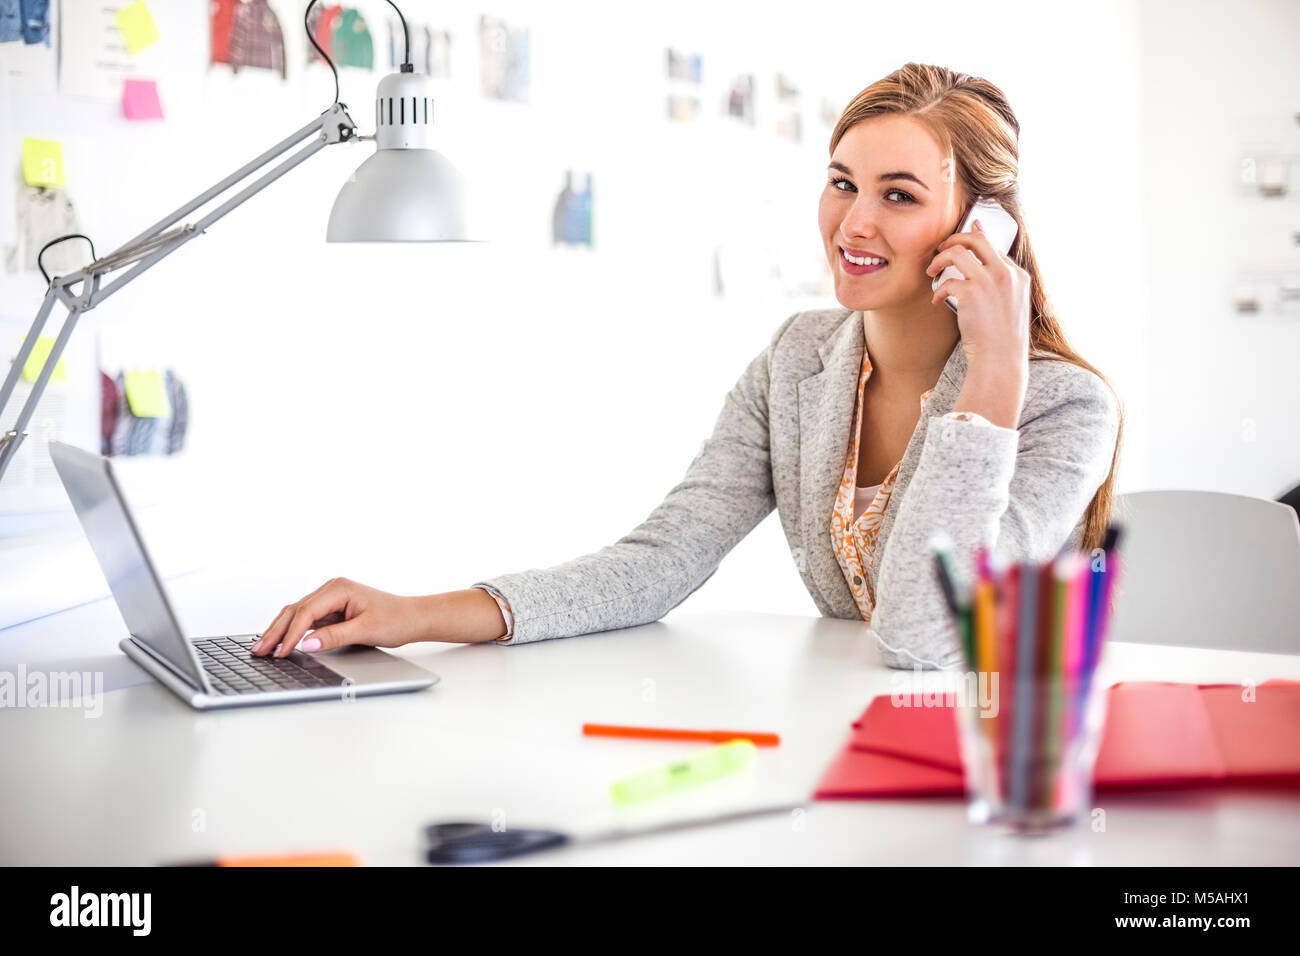 Portrait of young businesswoman using cell phone and laptop in office - Stock Image